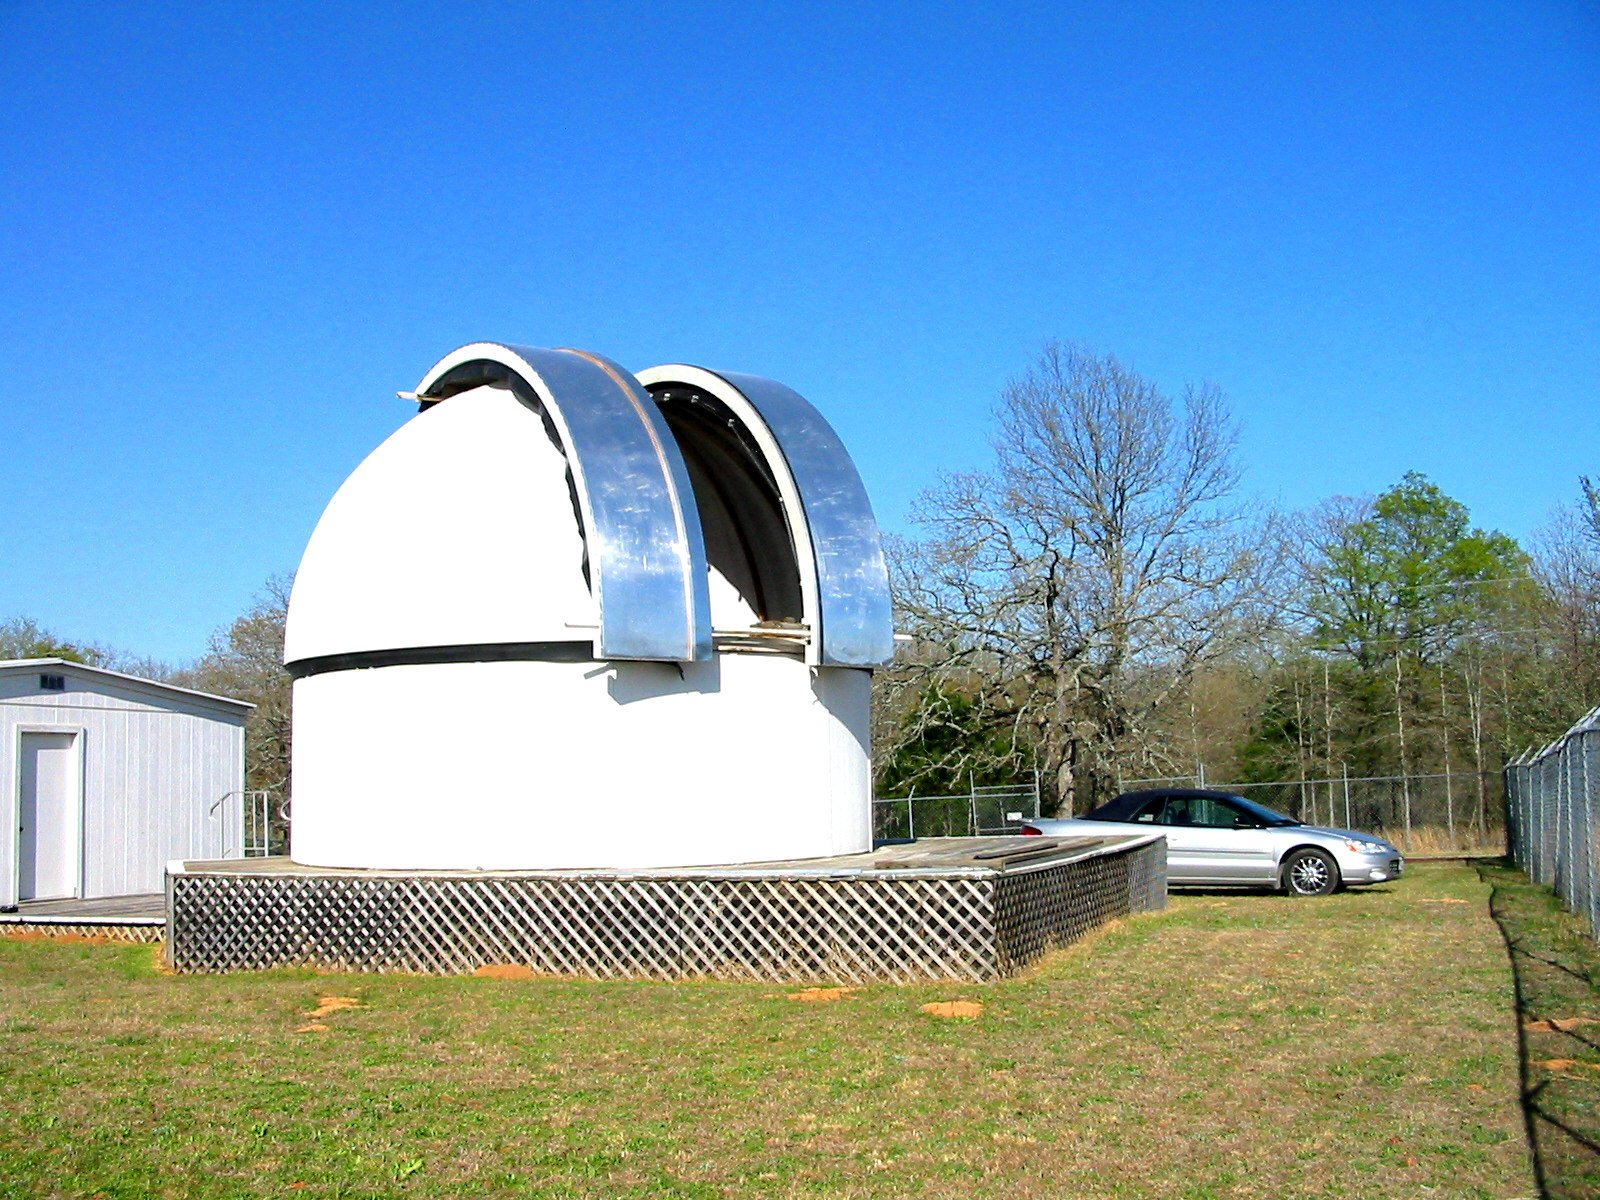 Home Observatory Astronomy (page 4) - Pics about space